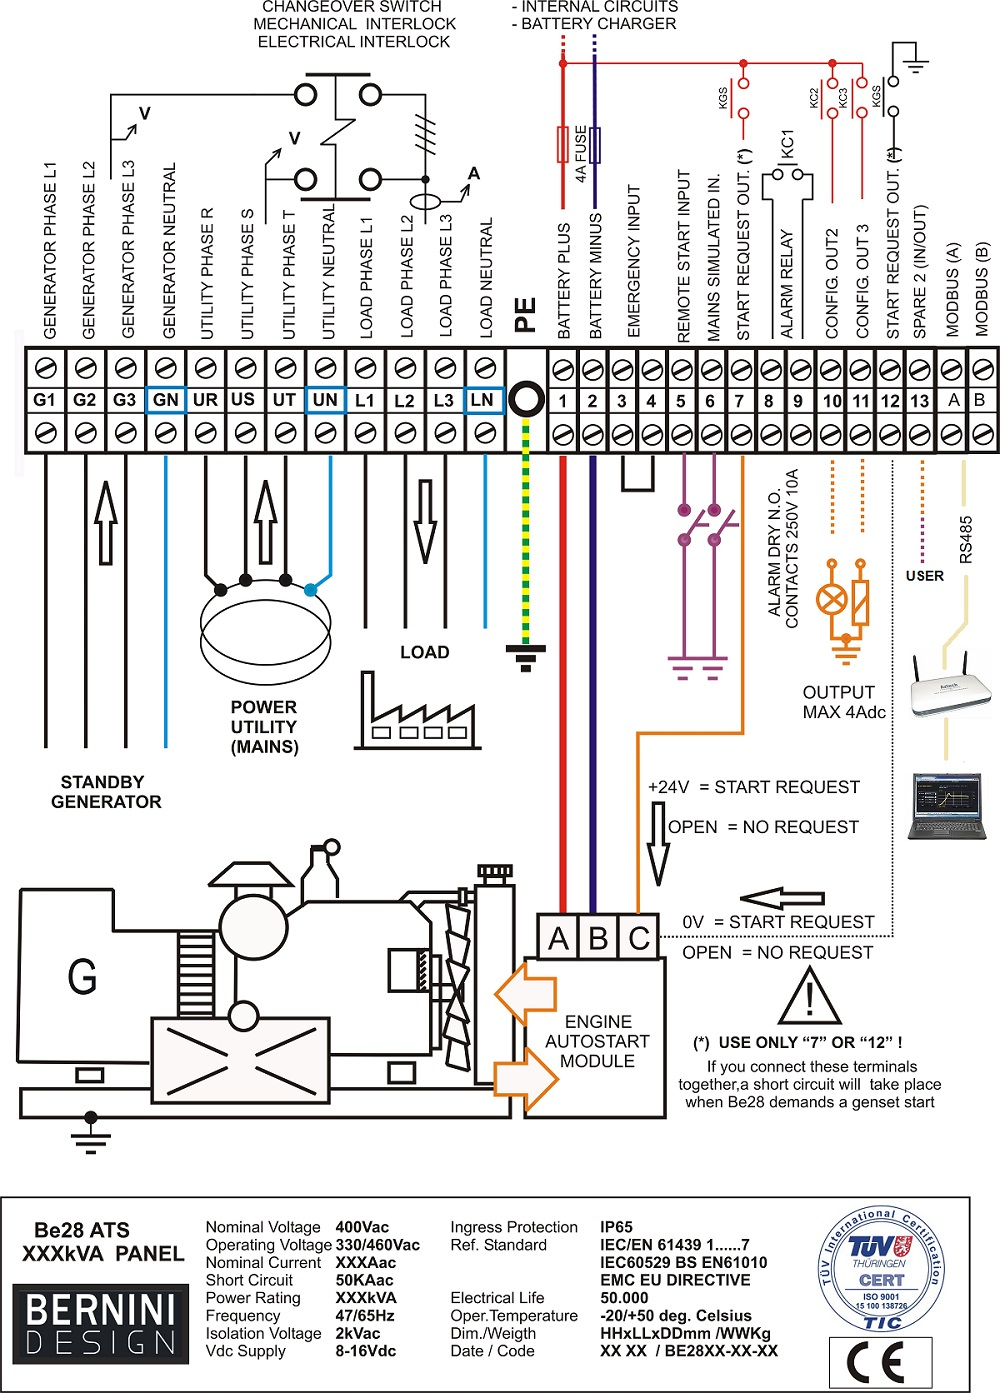 Wire Diagram For Transfer Switch   Wiring Library - Generac Generator Wiring Diagram